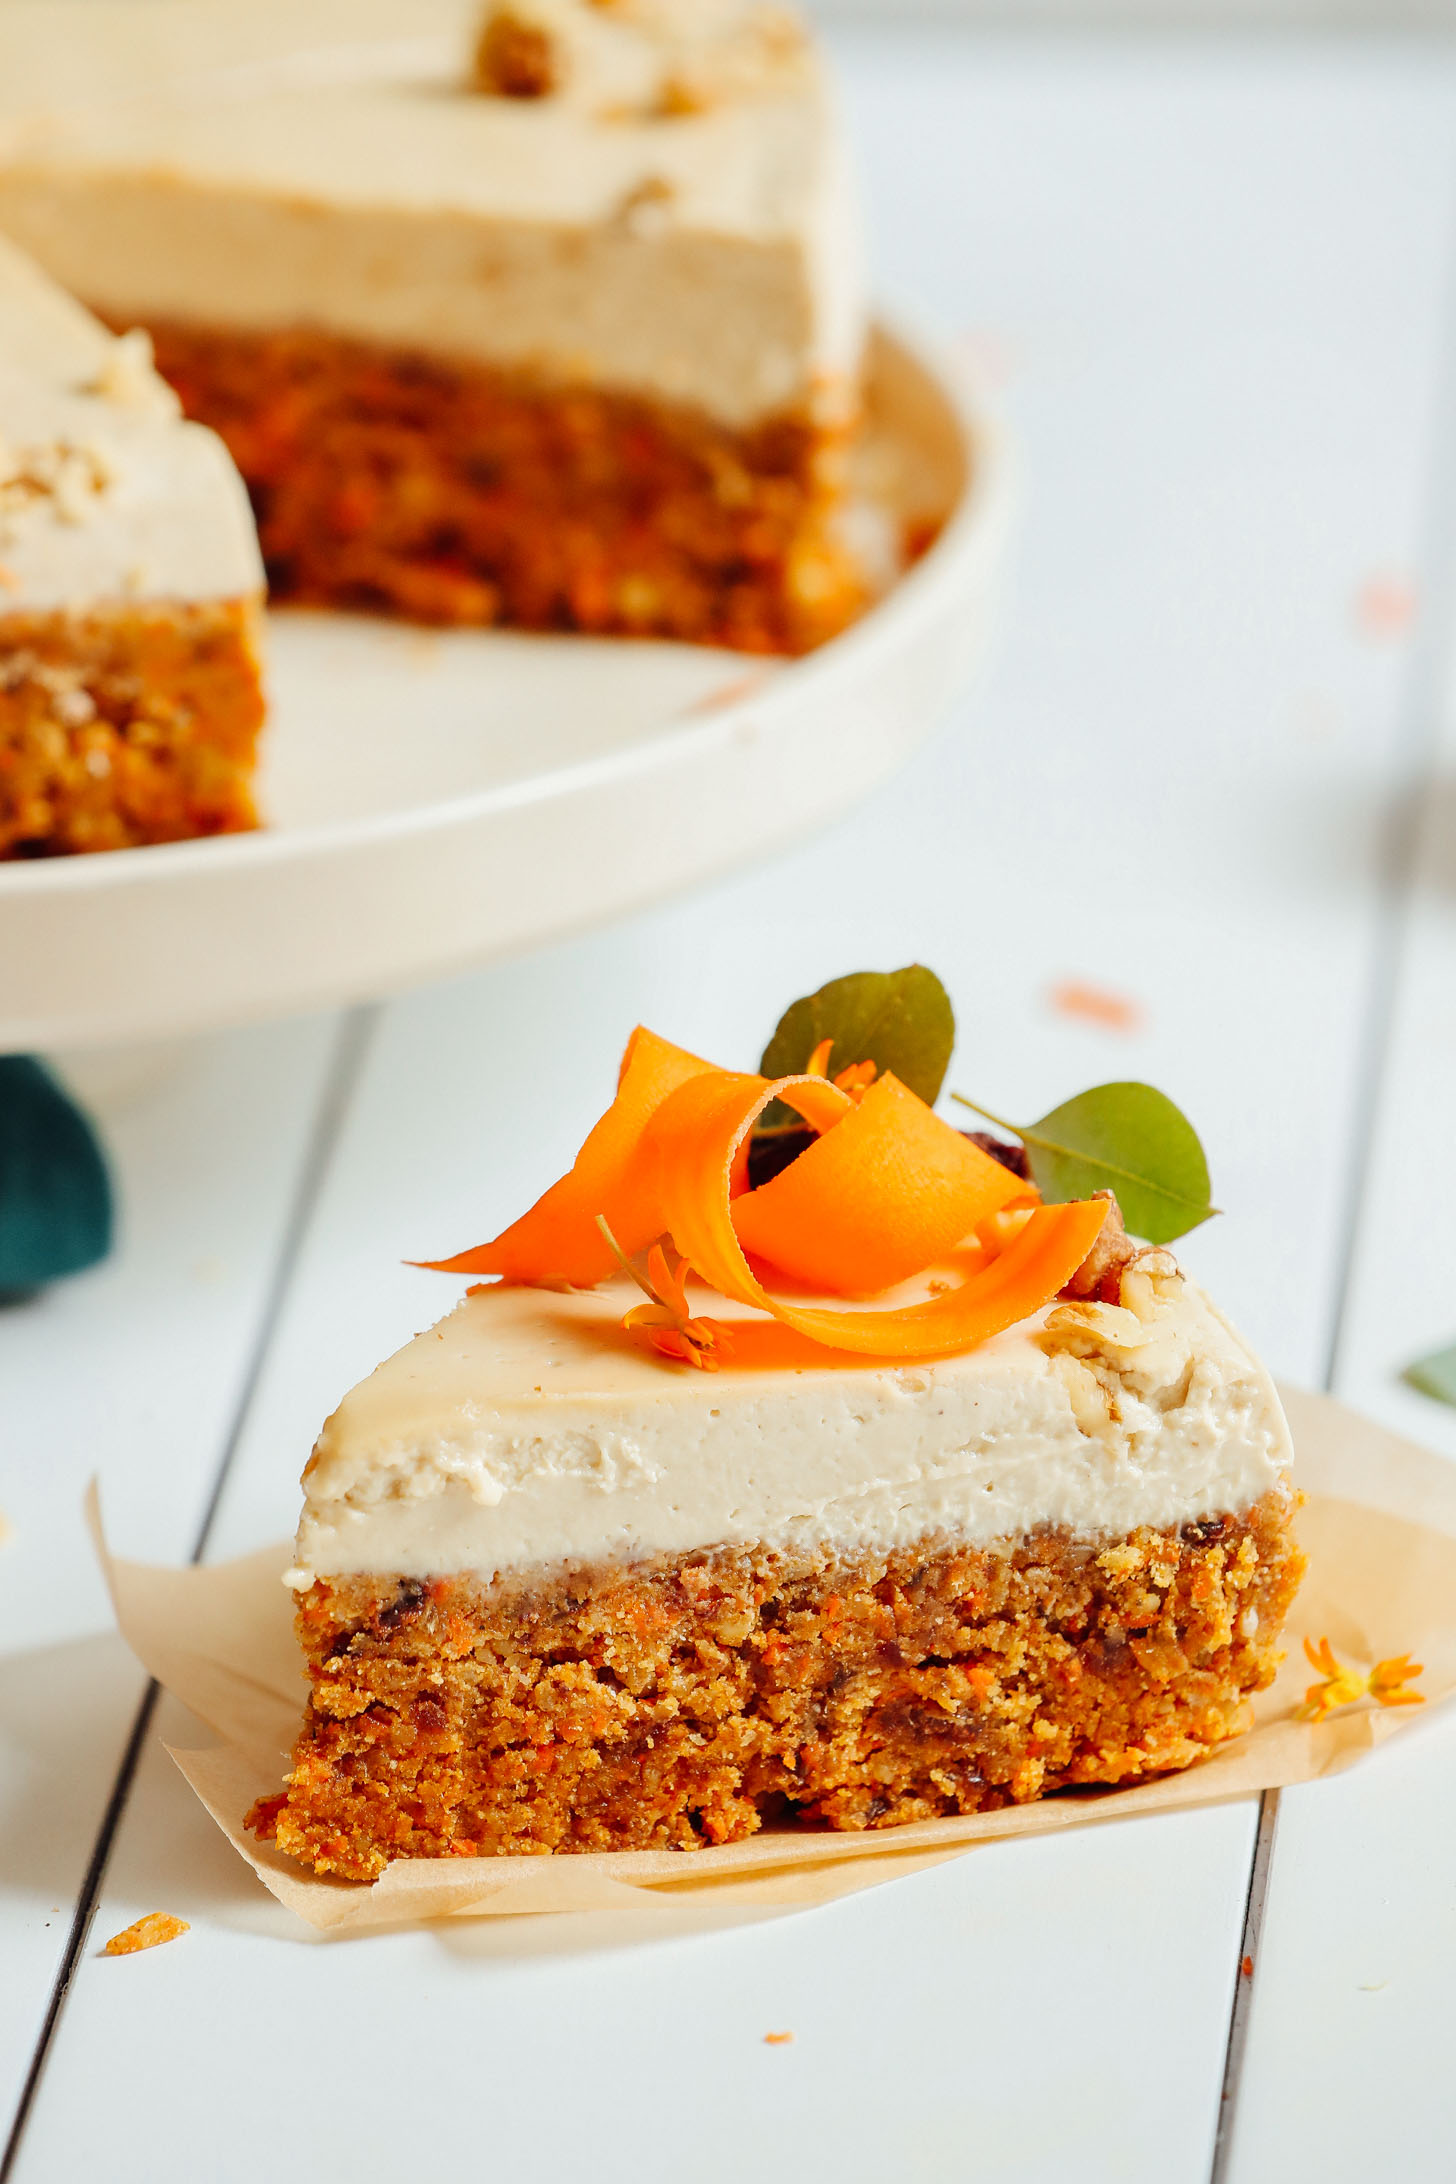 Close up shot of a slice of Raw Vegan Carrot Cake with vegan cream cheese frosting